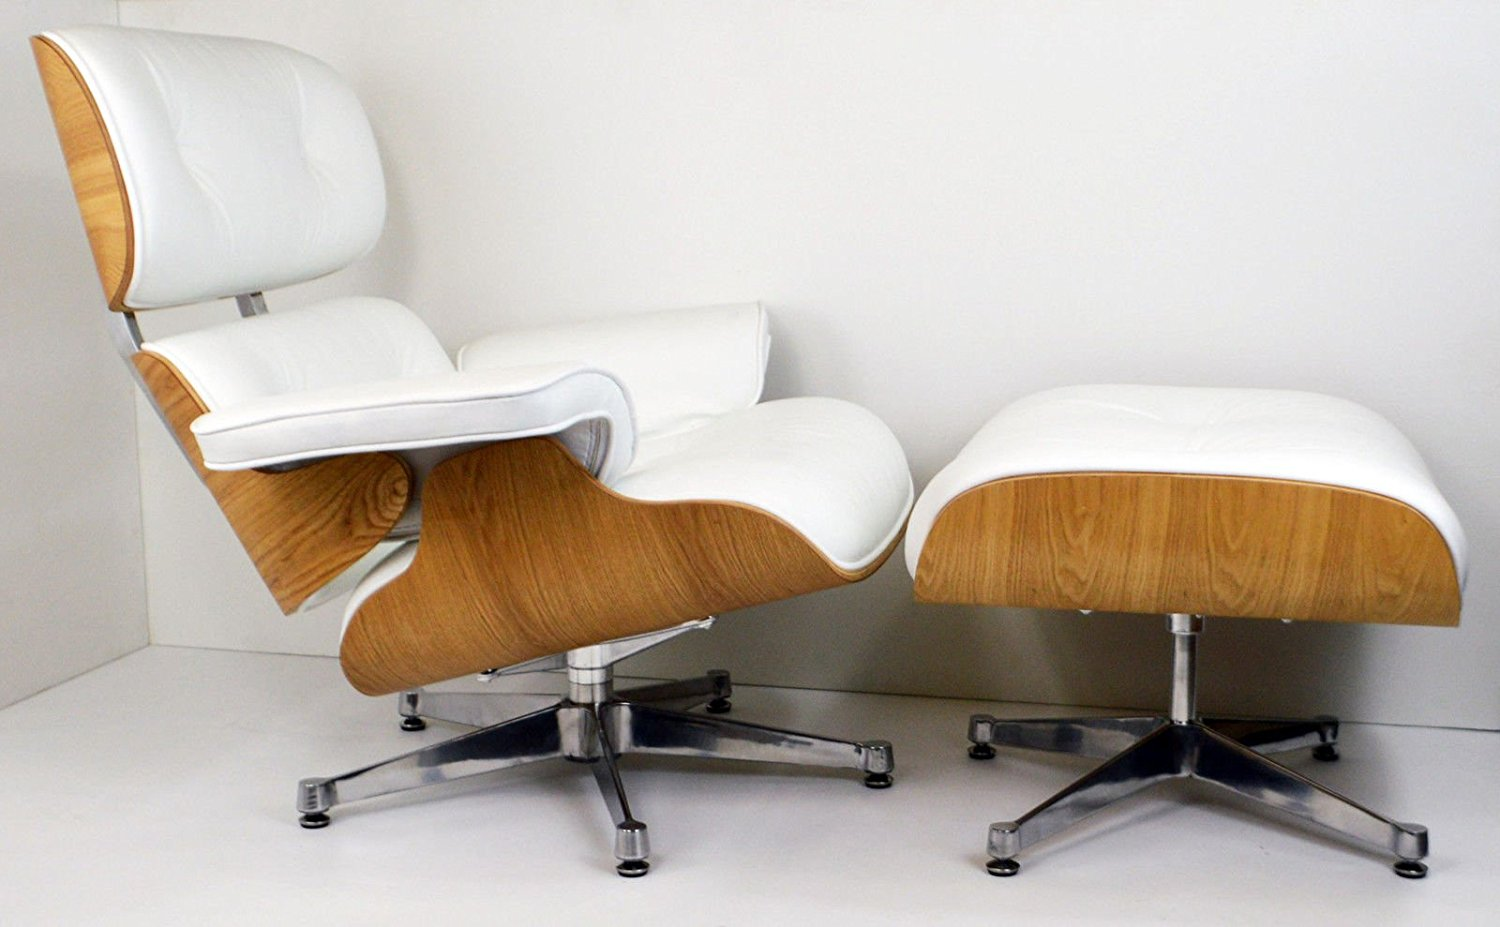 Eames lounge chair reproduction uk for Lounge chair replica erfahrungen